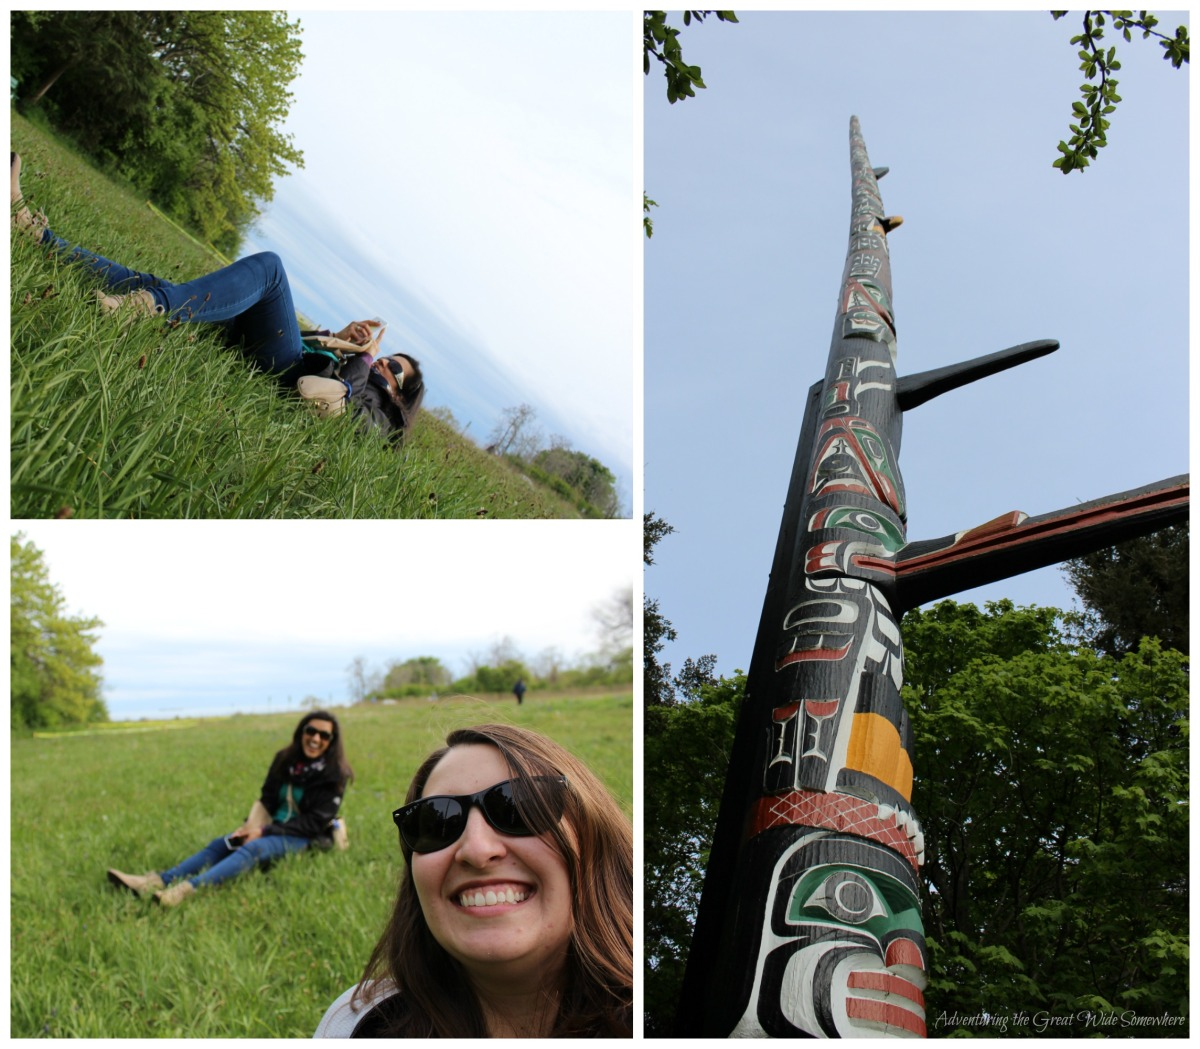 Lying Down Flat Trying to Capture the World's Tallest Totem Pole